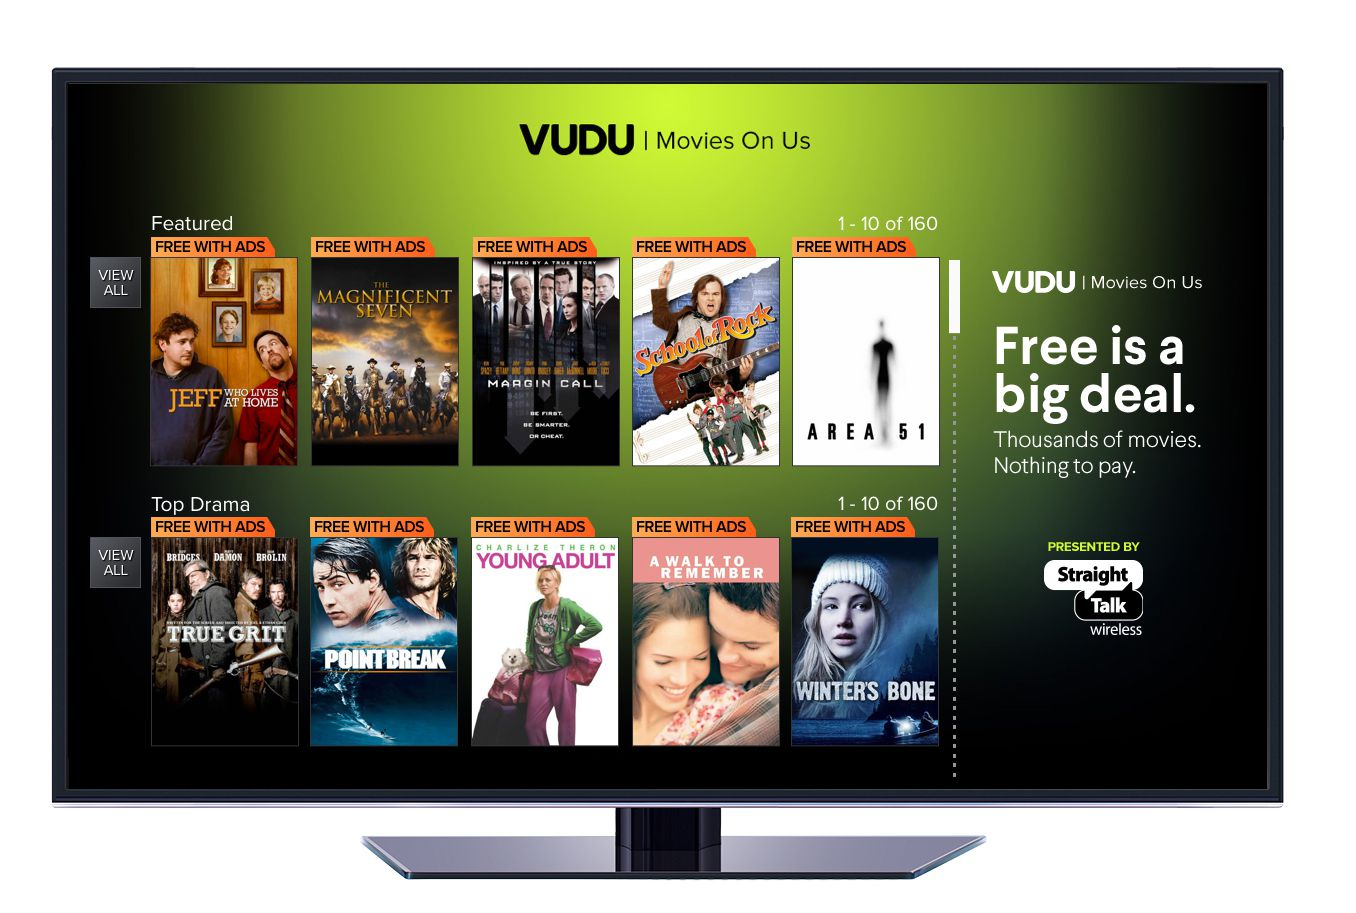 Walmart purchased the Vudu video-streaming service in 2010.